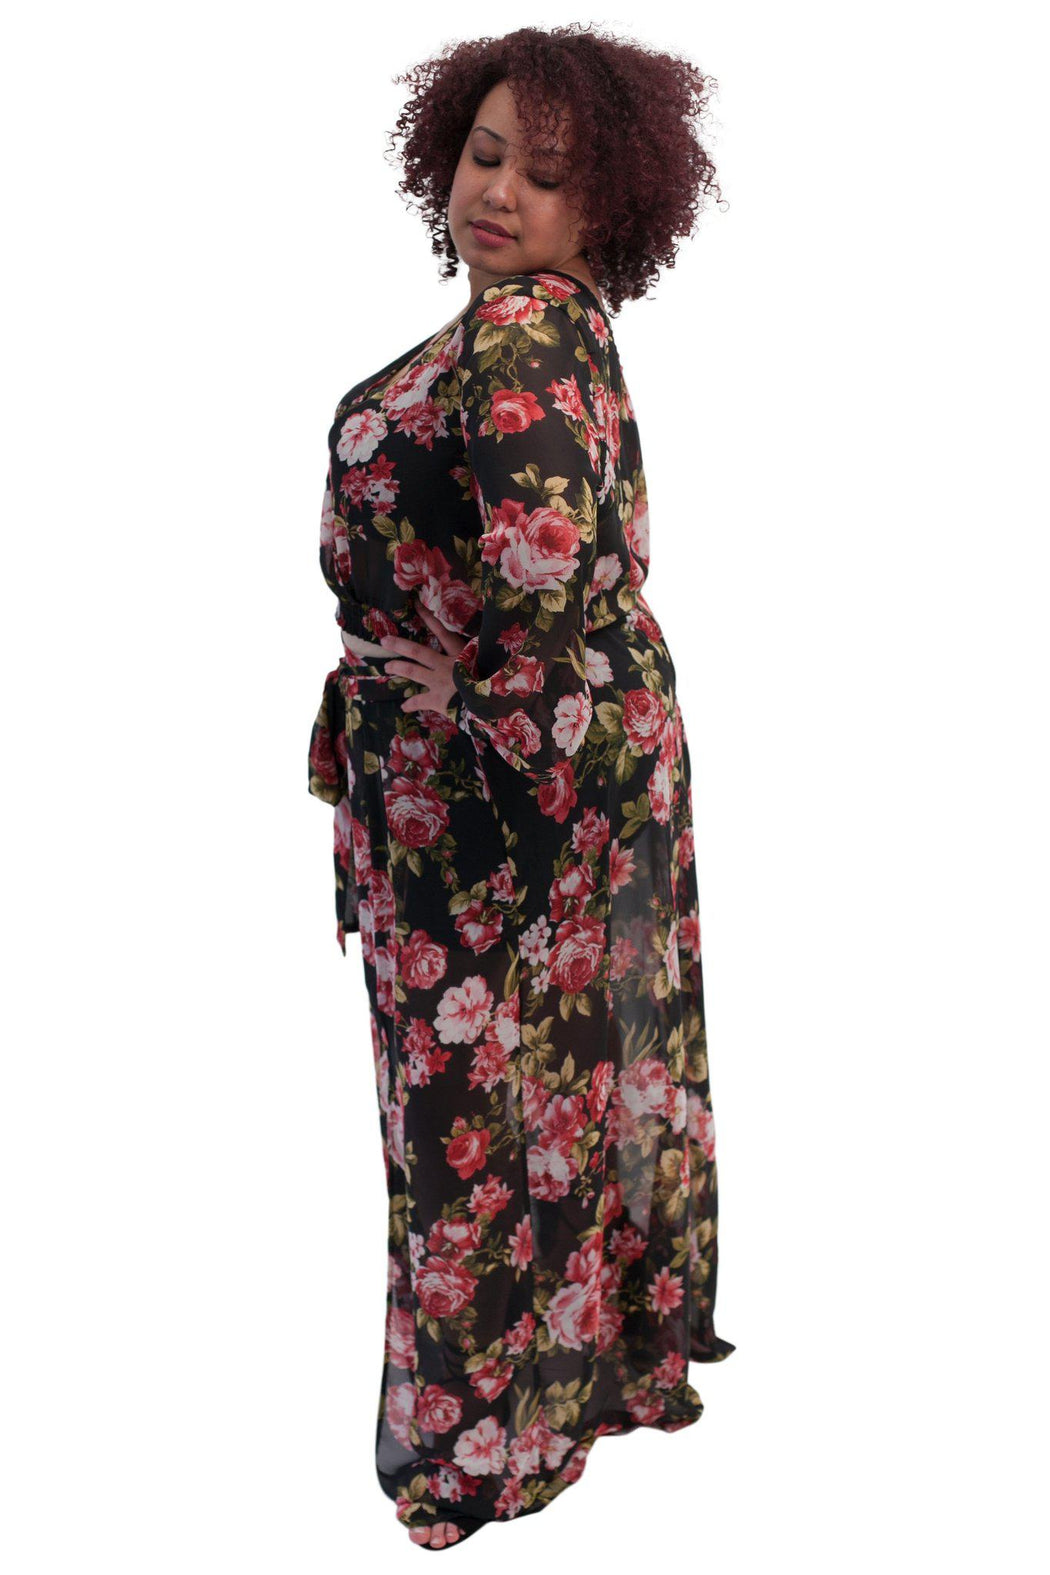 PRIMROSE black floral chiffon matched set side view